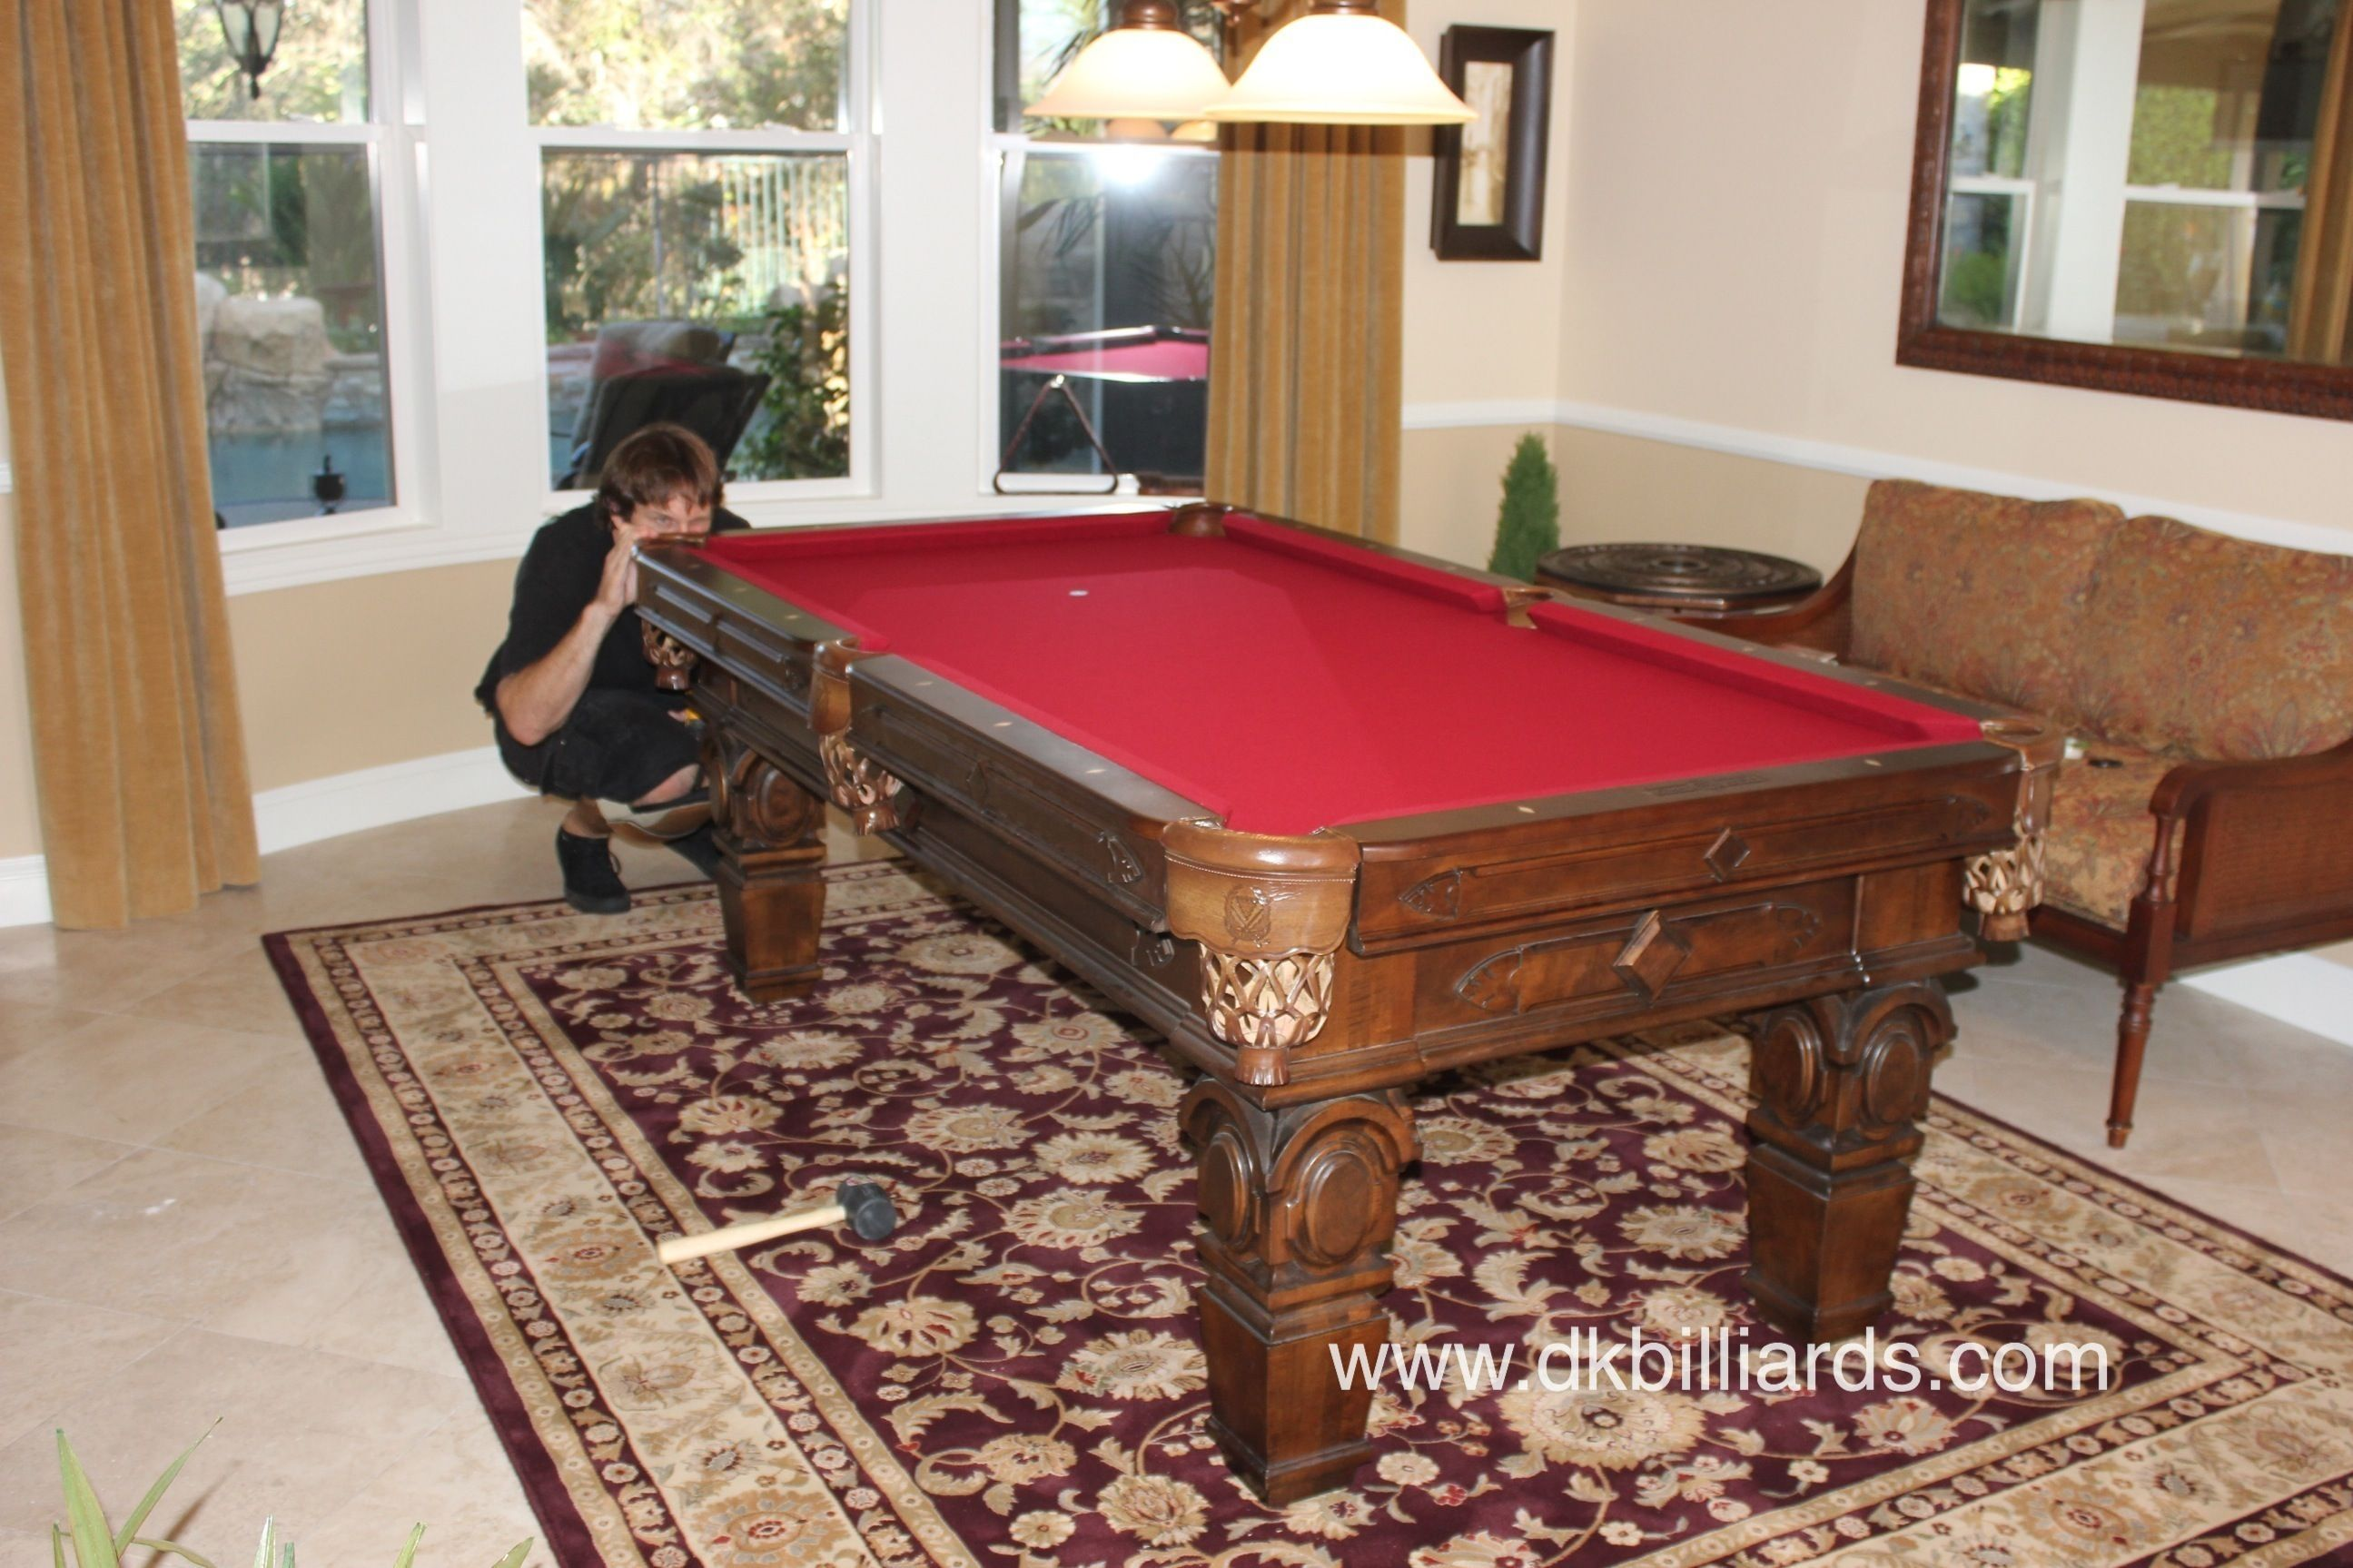 Pool Table On Area Rug With Images